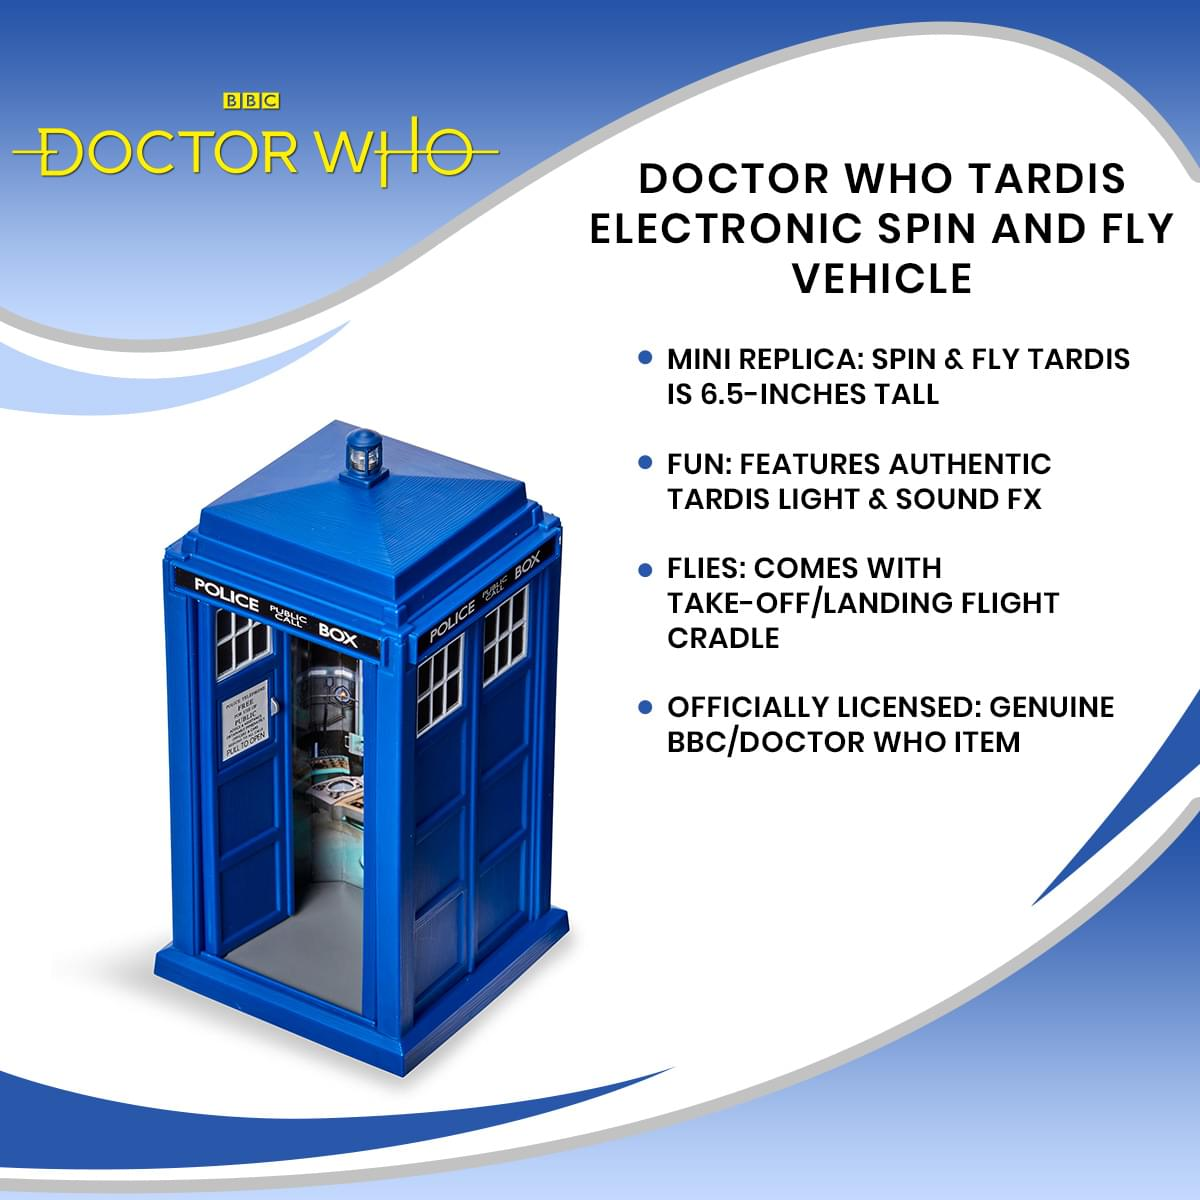 Doctor Who TARDIS Electronic Spin And Fly Vehicle